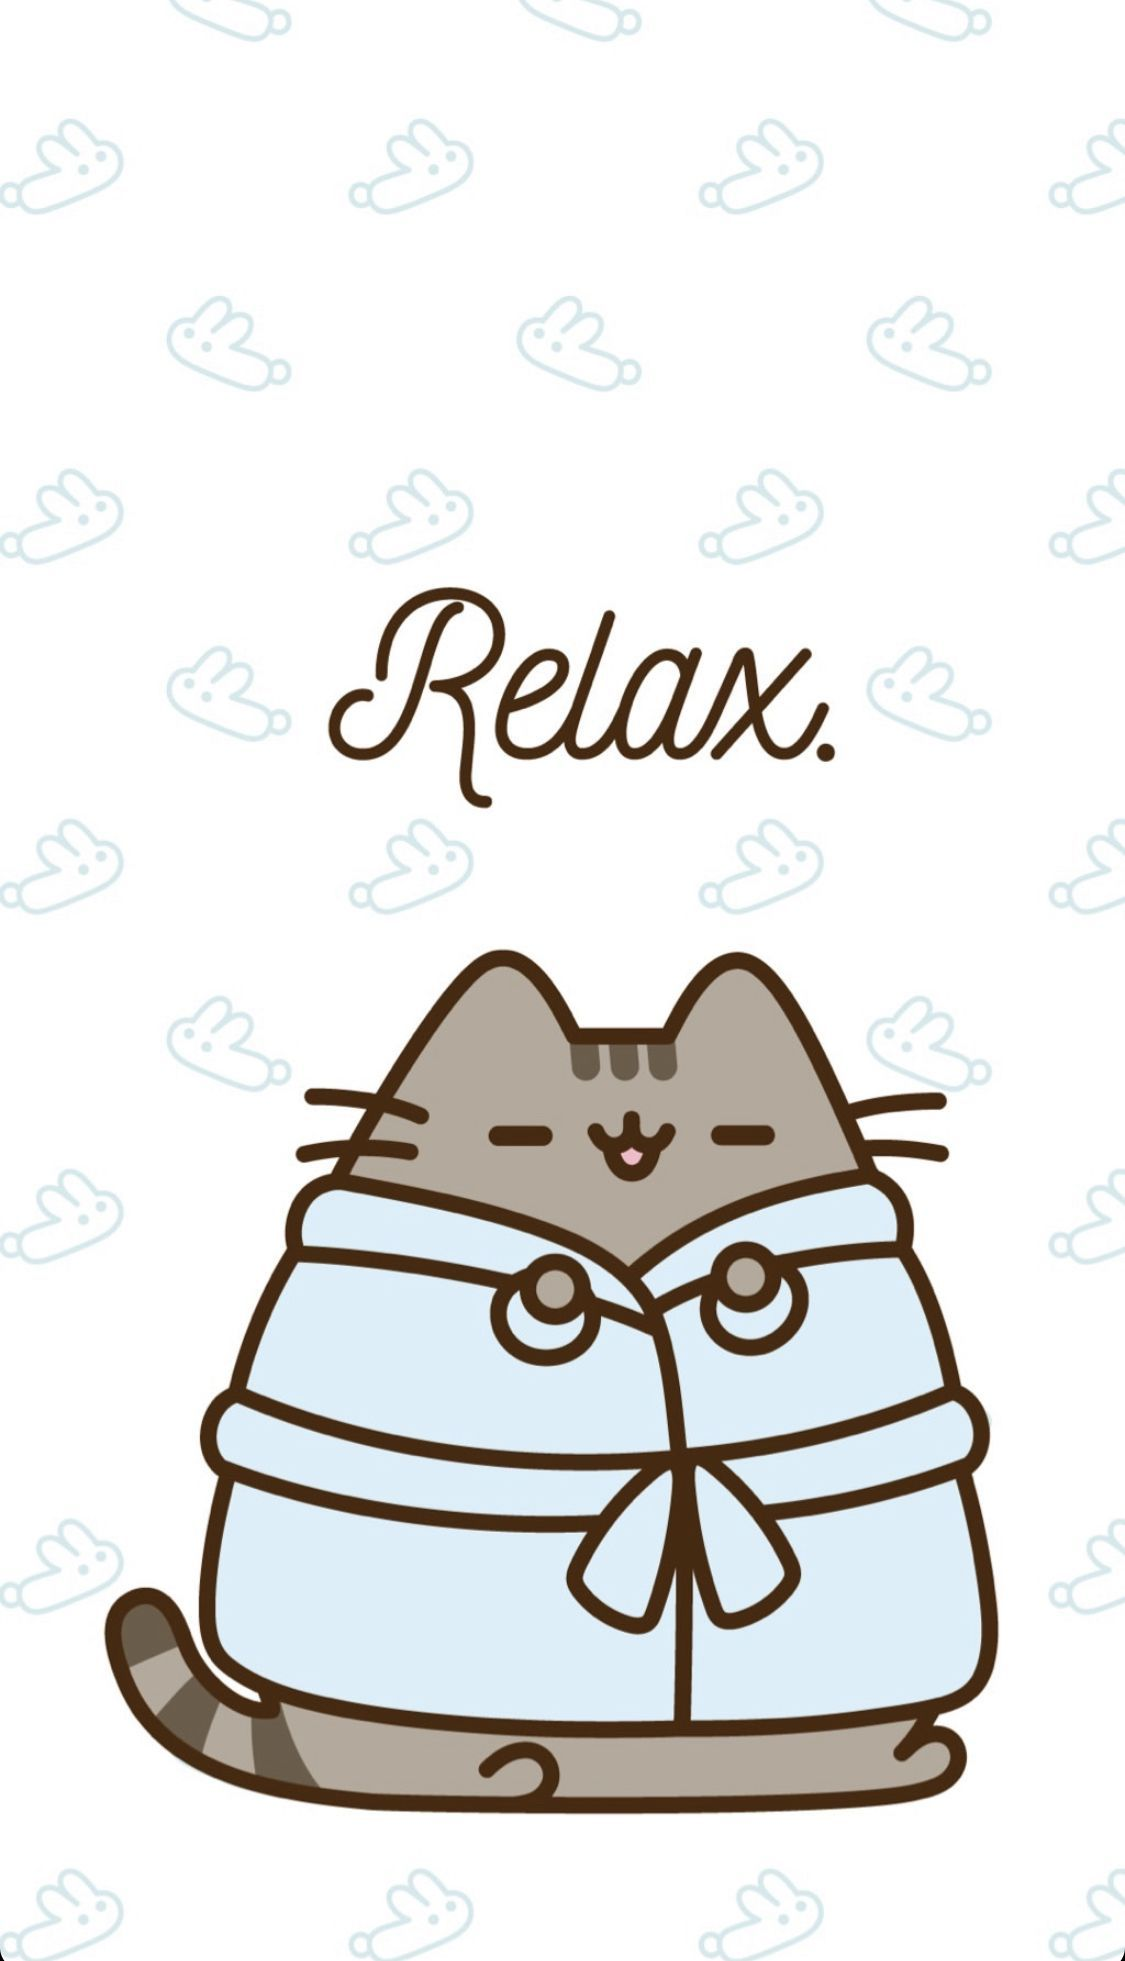 Cute pusheen wallpaper - Wallpaper Sun